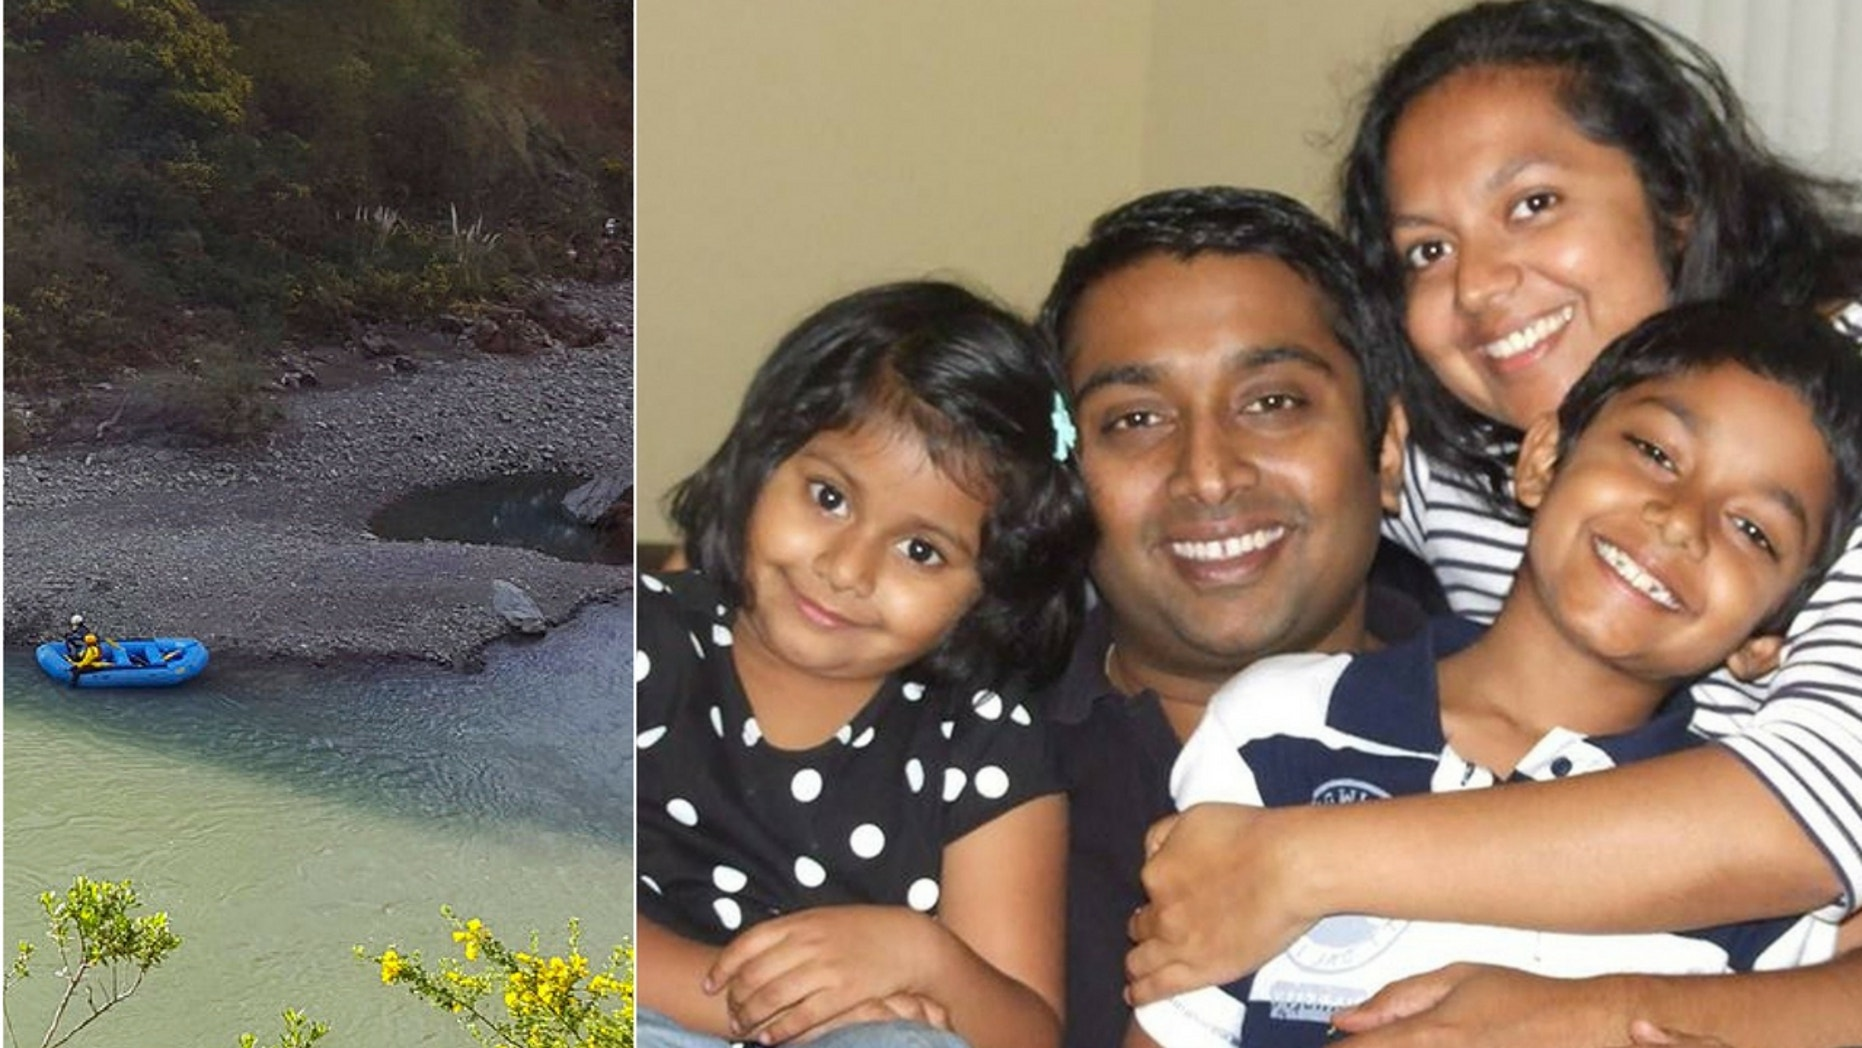 The bodies of Soumya Thottapilly, 38 (left); Sandeep Thottapilly, 41 (middle); Saachi Thottapilly, 9 (right) have been since they were reported missing on April 8. Police are still searching for 12-year-old Siddhant Thottapilly (lower left).